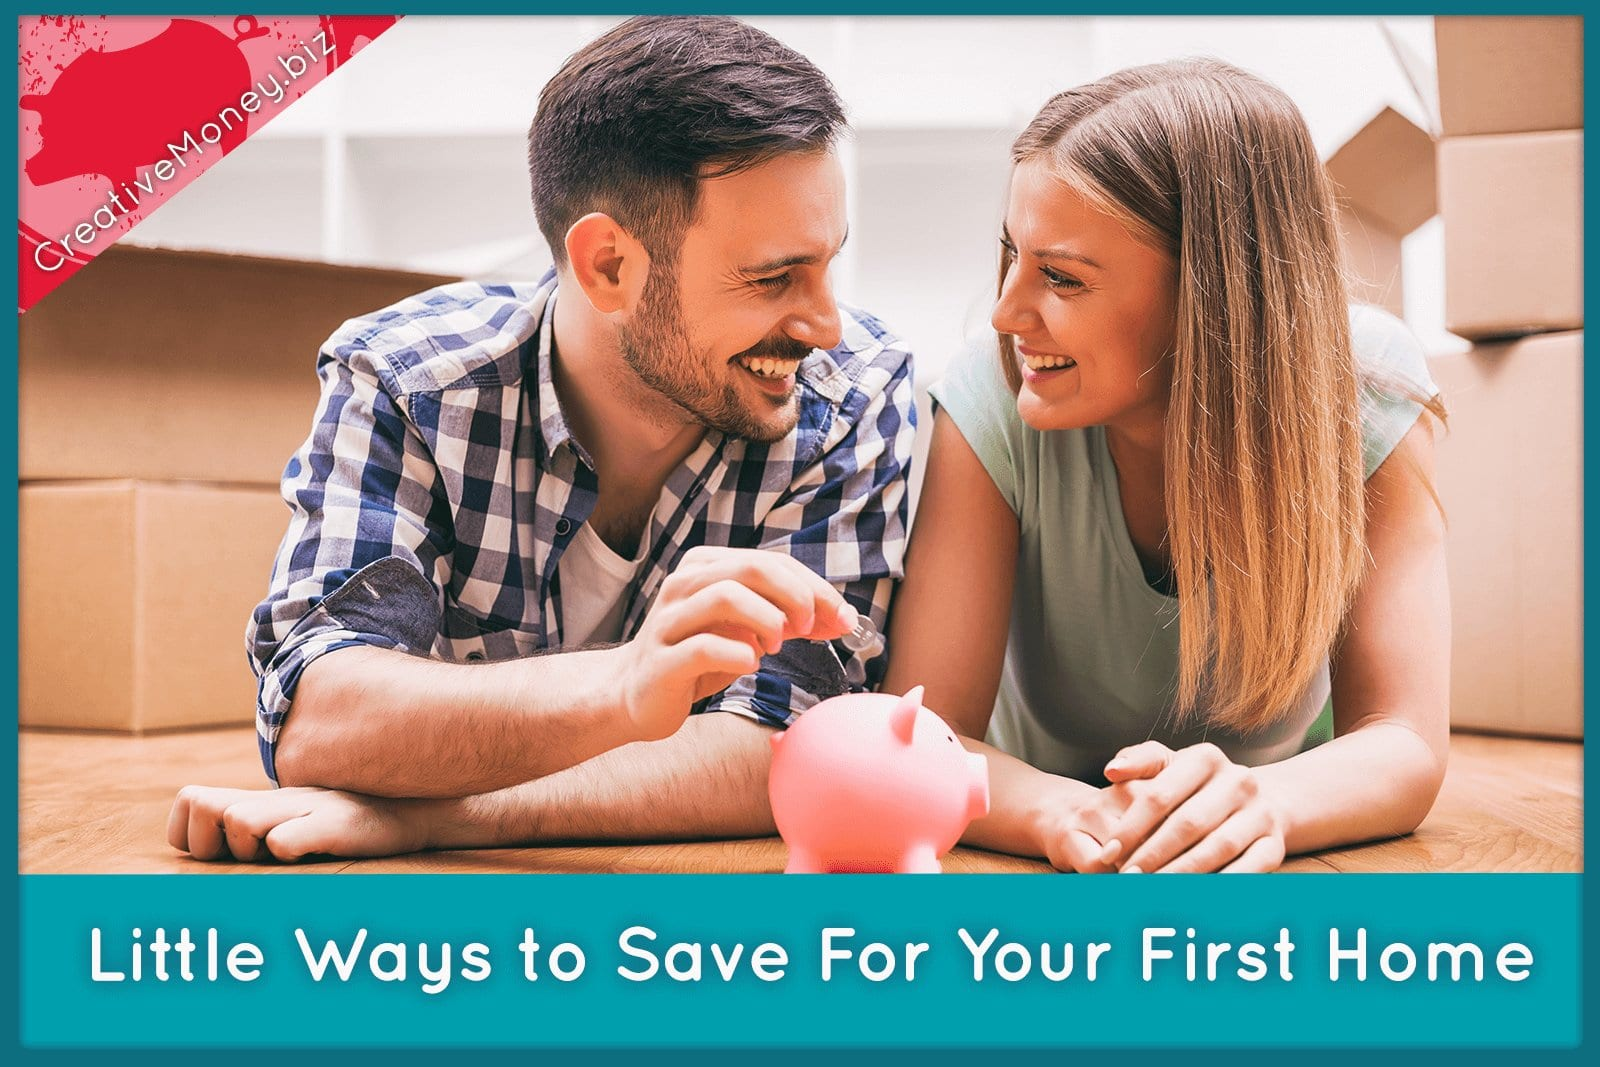 Little Ways to Save For Your First Home